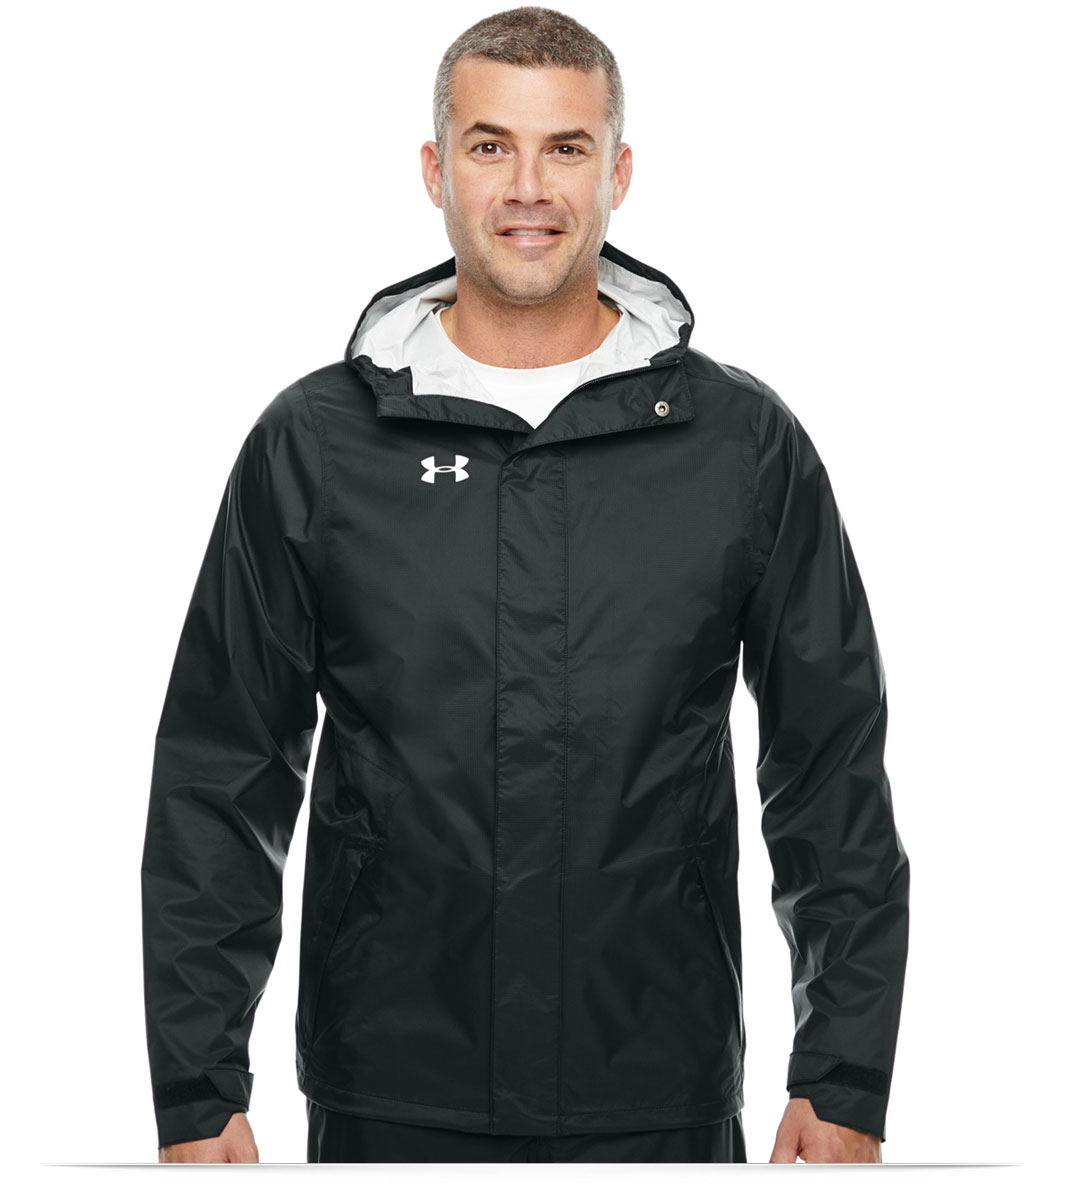 9b7bca03a3fc Custom Under Armour Men s Ace Rain Jacket Online at AllStar Logo